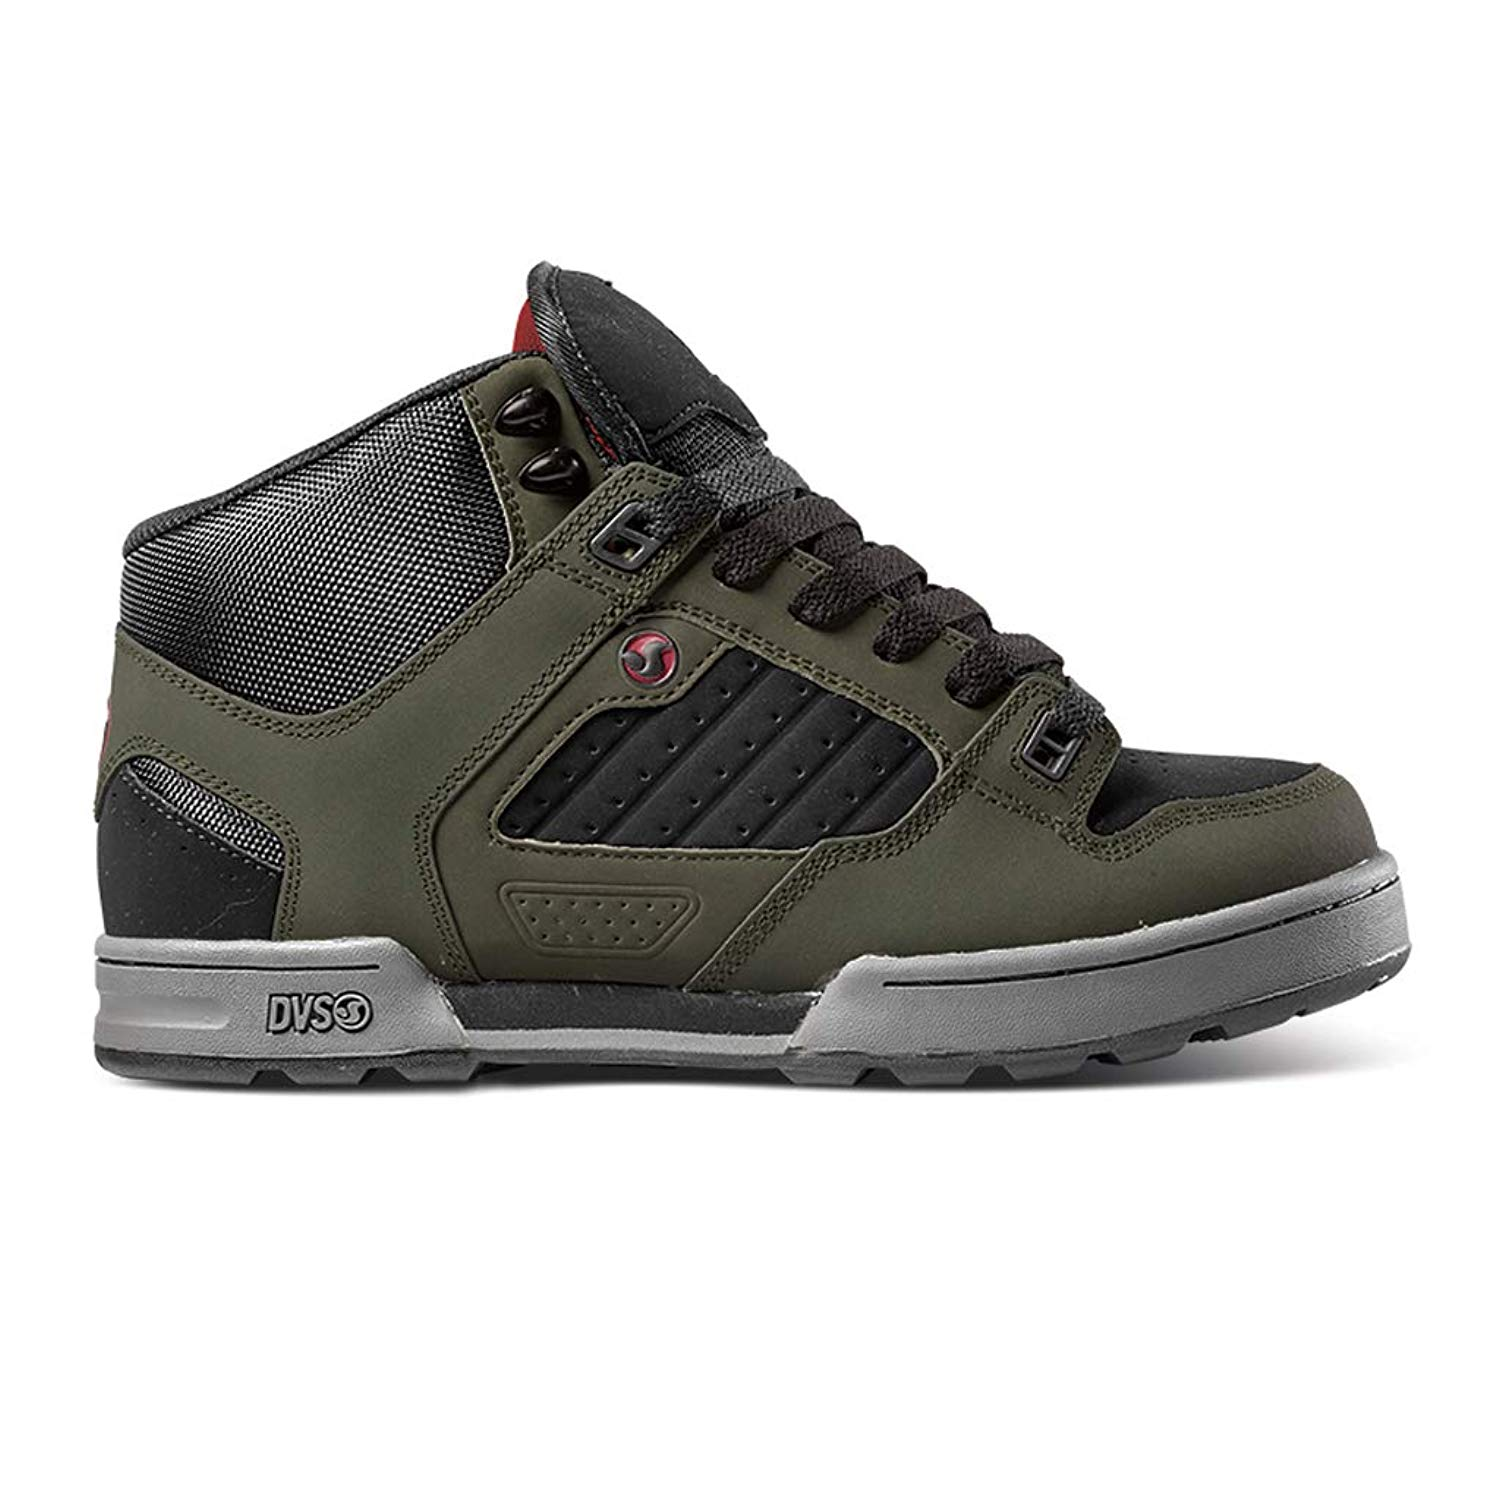 3039bf50bc0ad4 Get Quotations · DVS Men s Militia Boot Skate Shoe